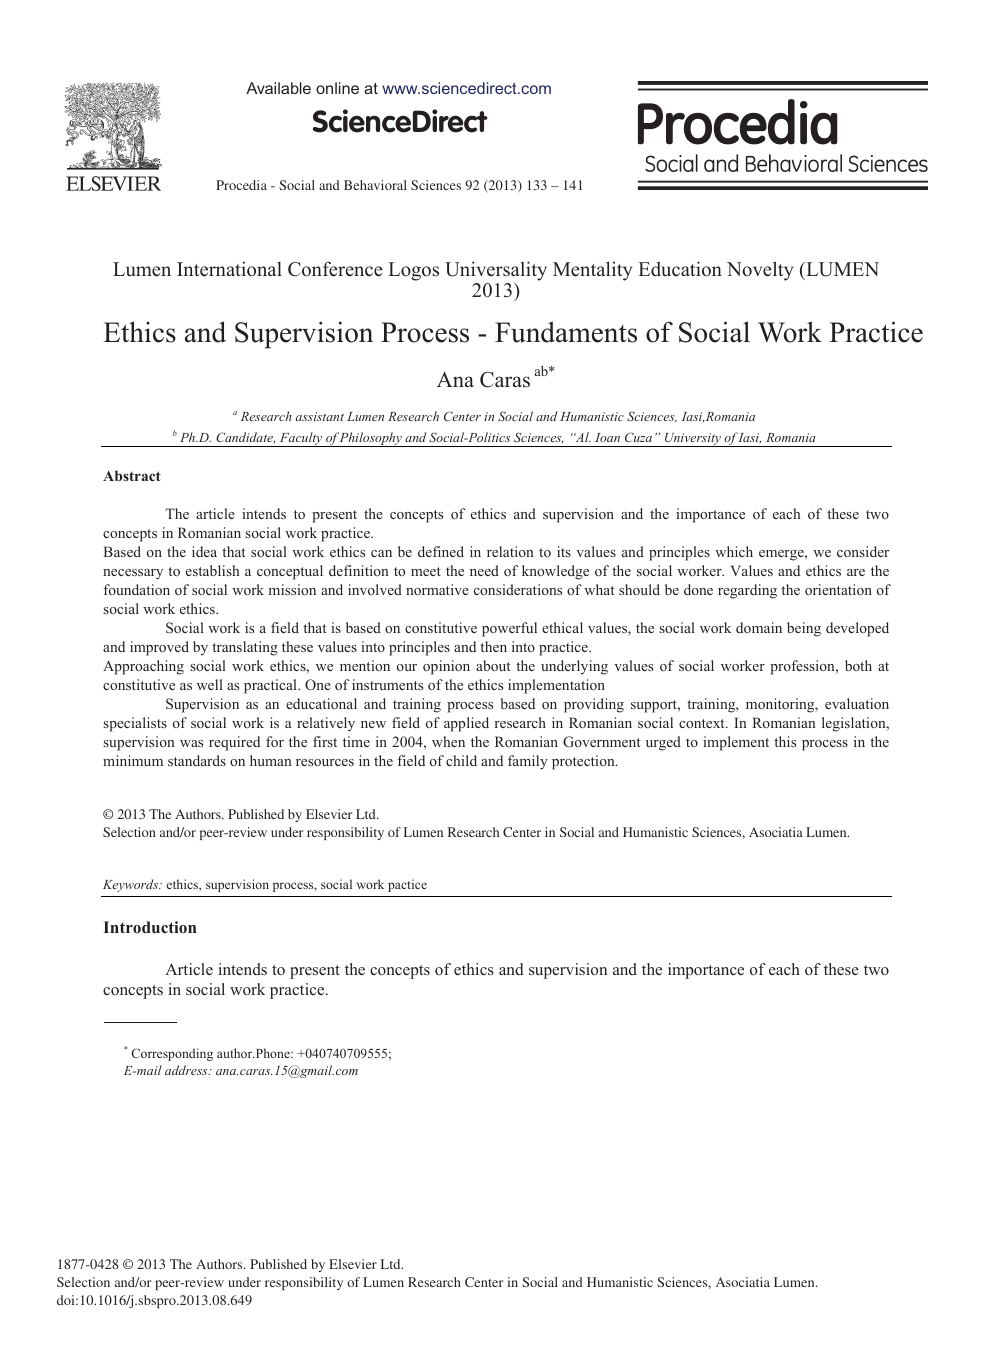 Ethics and Supervision Process - Fundaments of Social Work